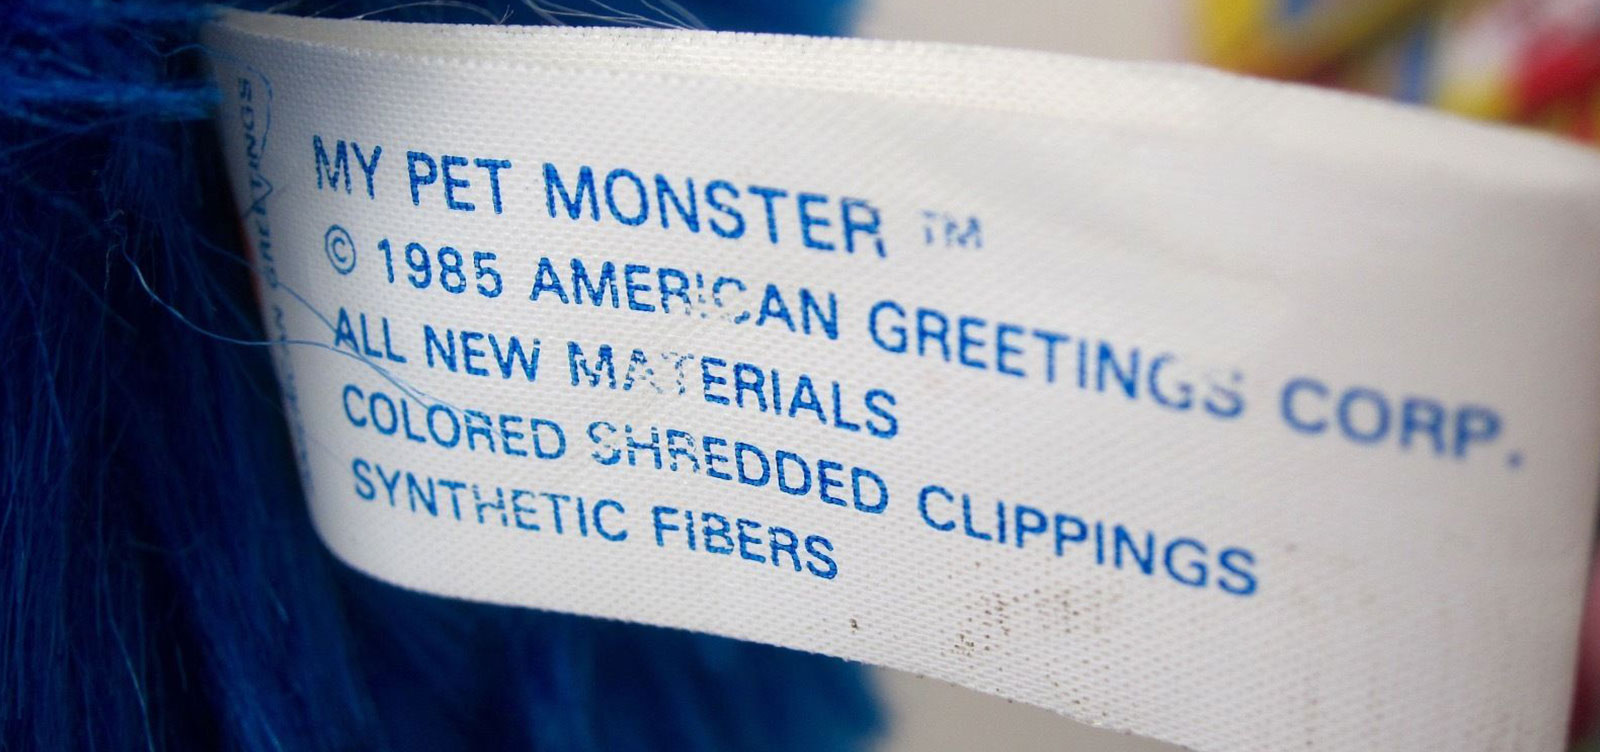 My Pet Monster - Label